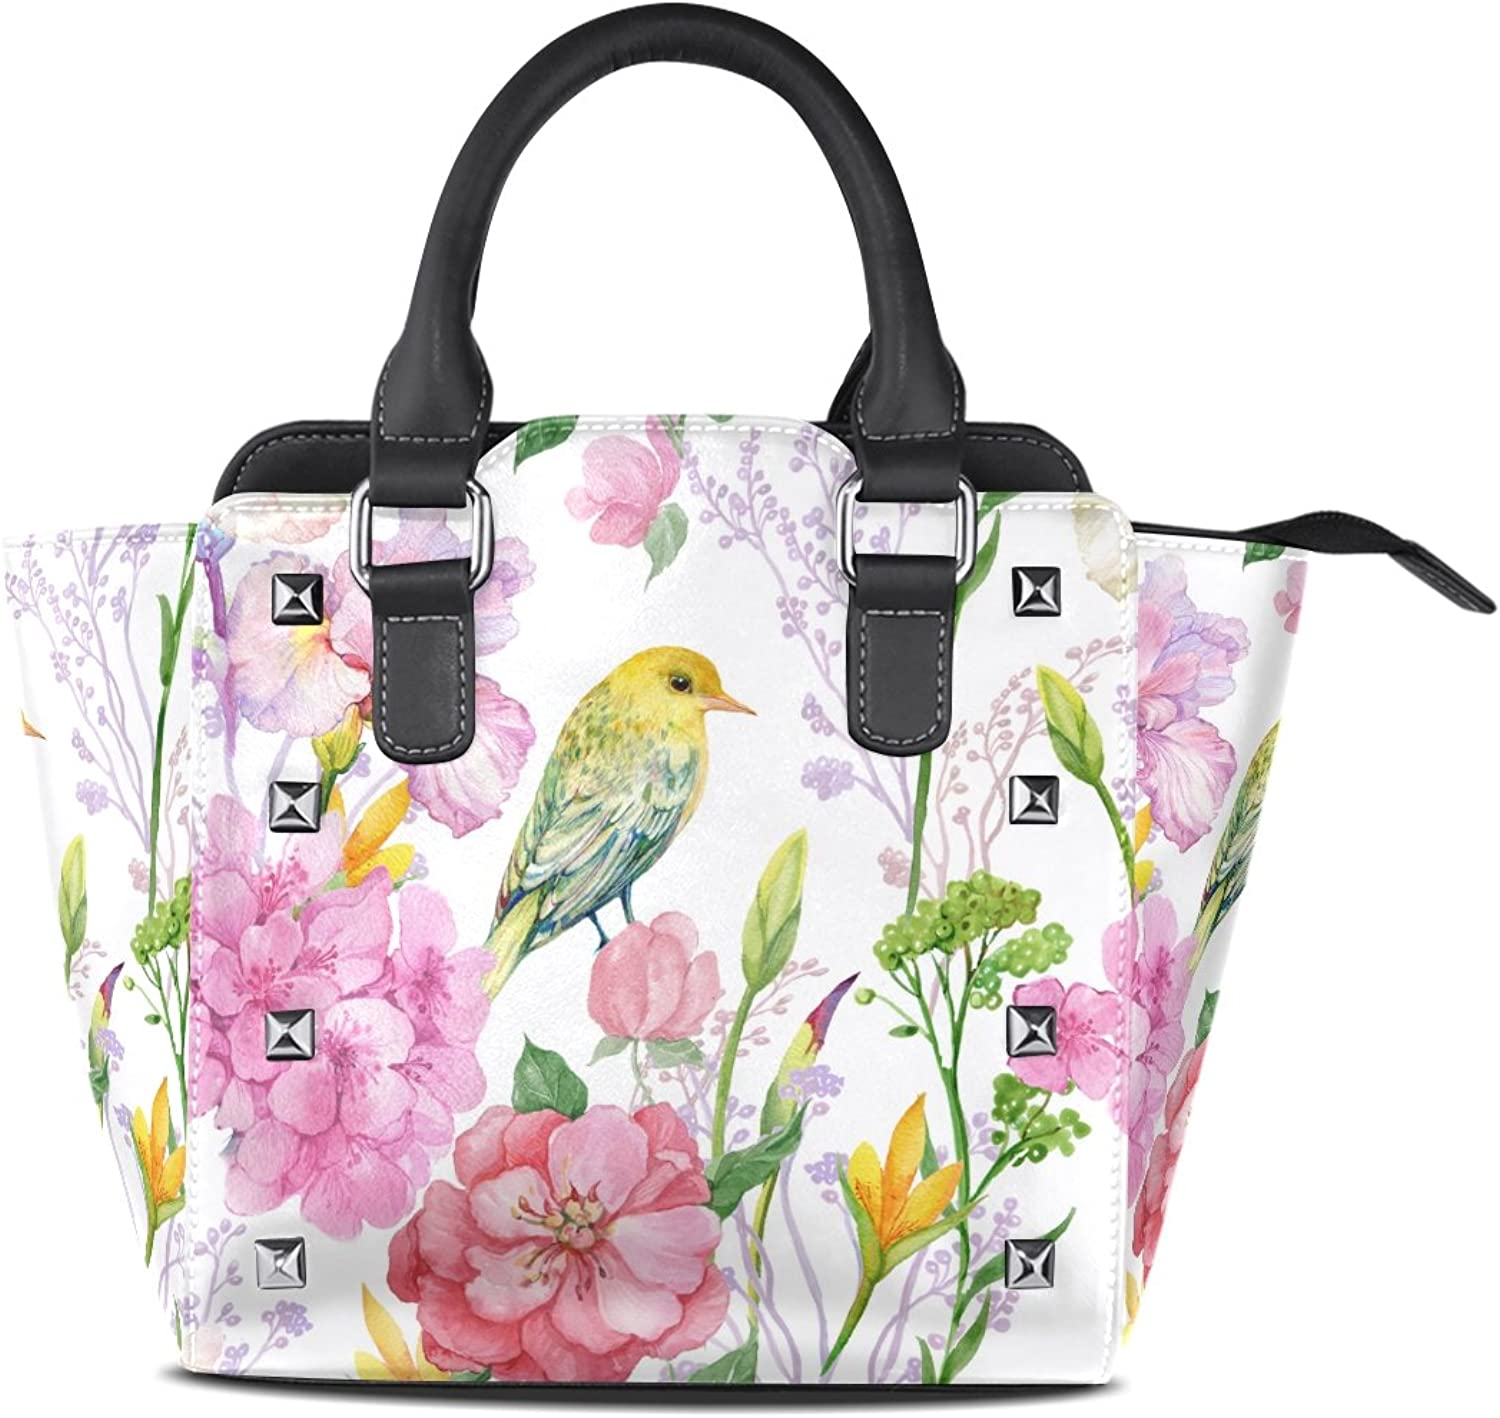 My Little Nest Women's Top Handle Satchel Handbag Watercolor Branches Flowers Bird Ladies PU Leather Shoulder Bag Crossbody Bag